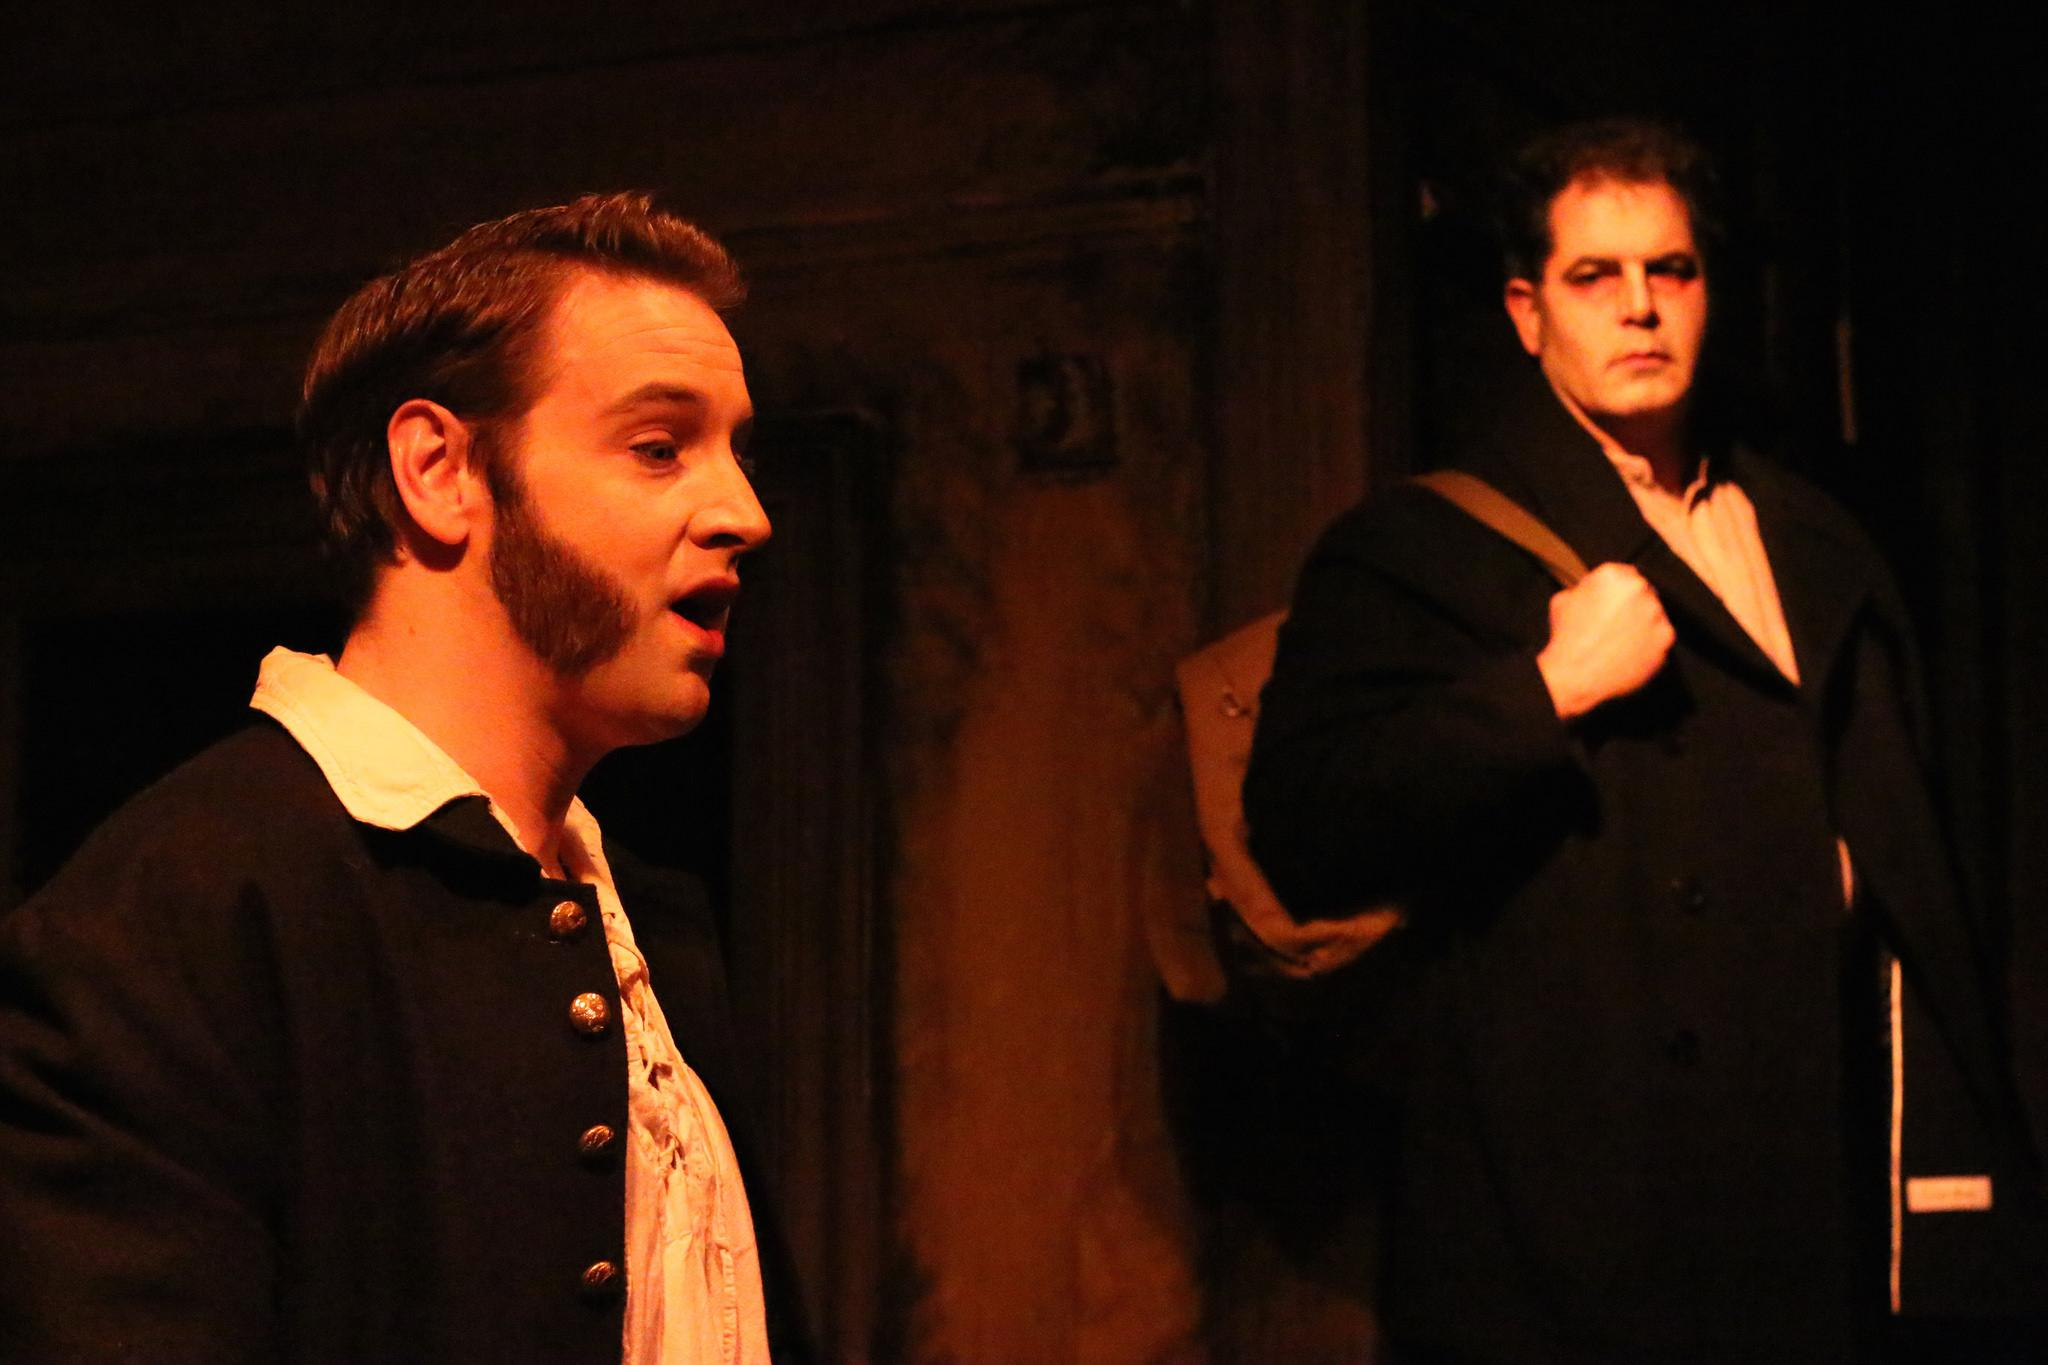 Nathan Carroll as Anthony Hope and Philip Torre as Sweeney Todd (Credit: Cody Jolly Photography)